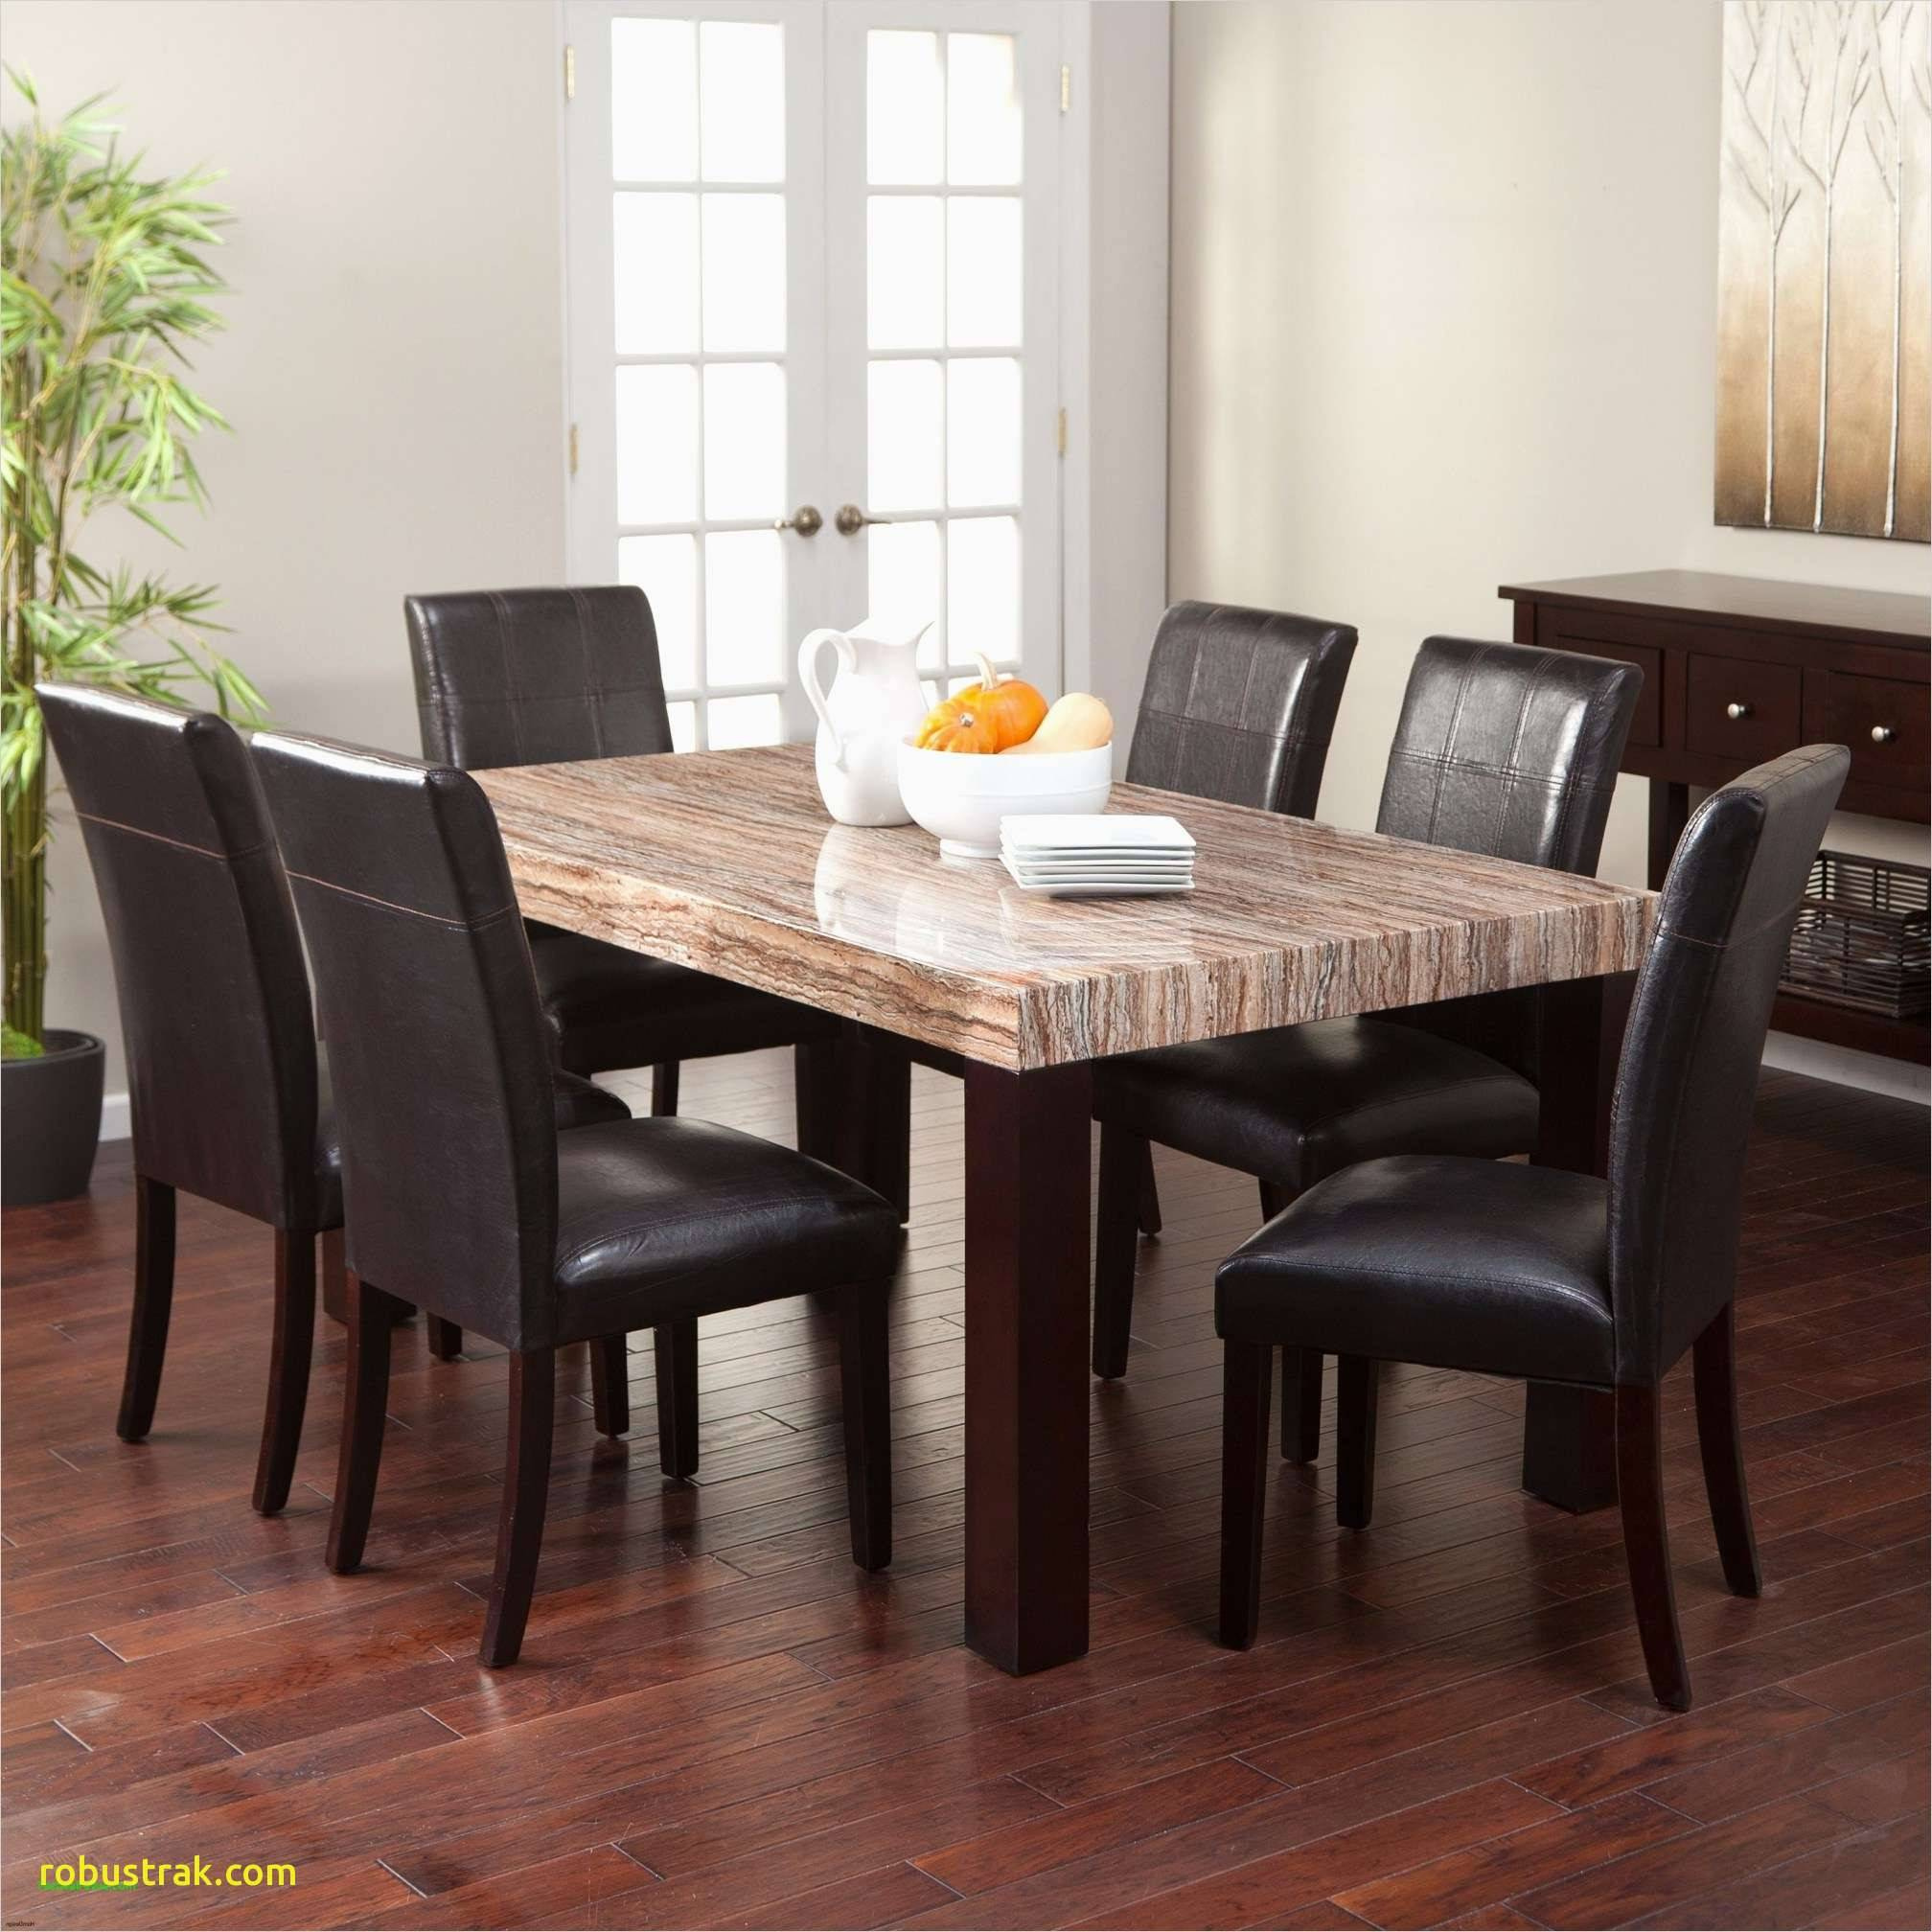 hardwood floor bedroom rug of fresh rugs under tables home design ideas with regard to master wit205 dining table sets 7 piece home design 0d from rug under